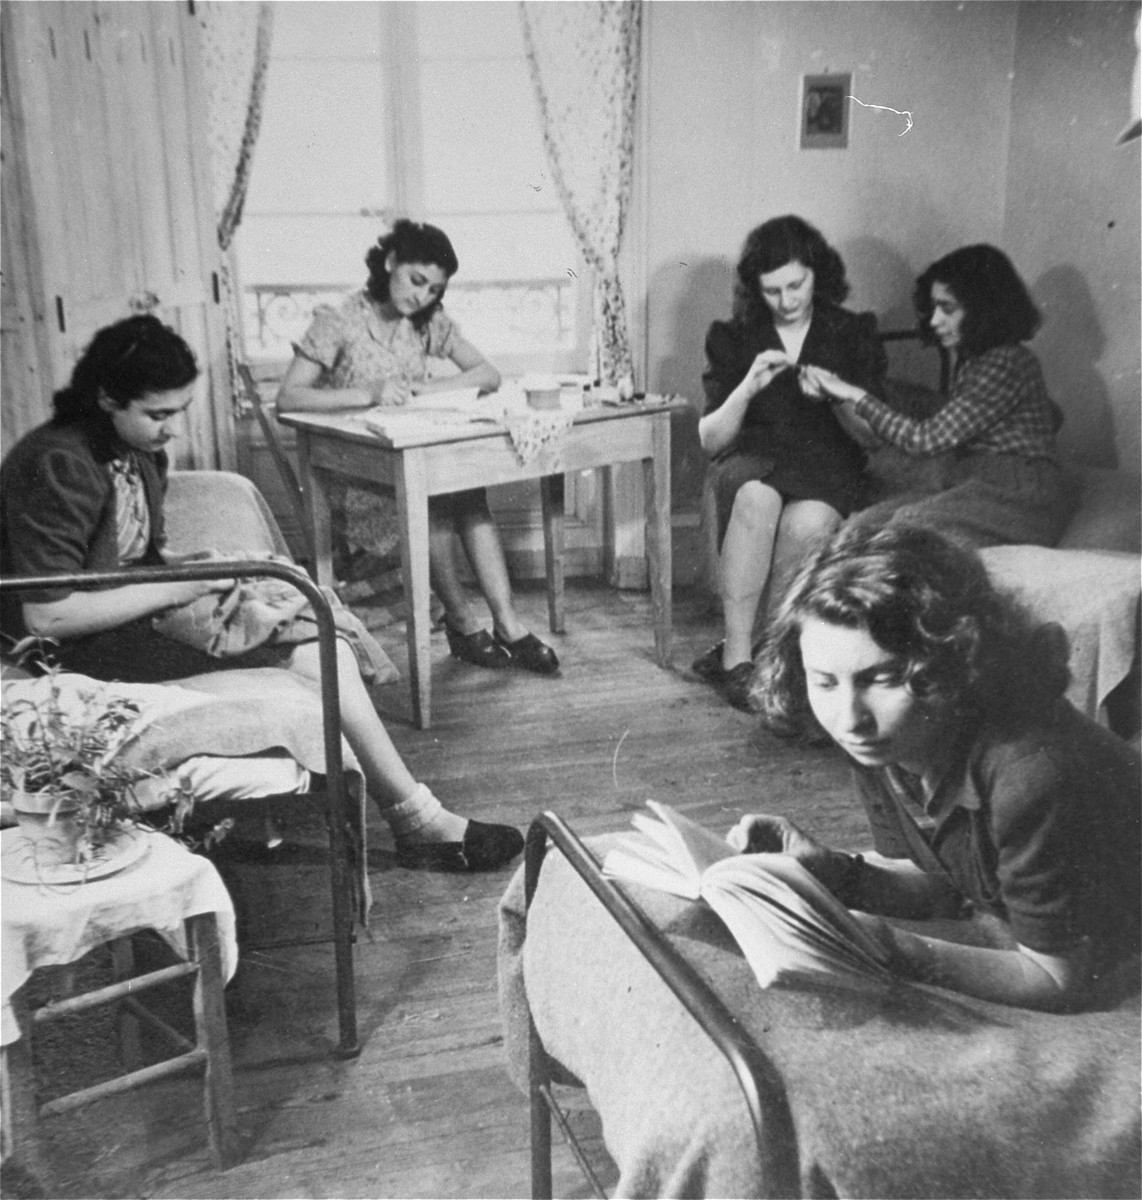 Young Jewish women living at the Le Tremplin children's home, relax in their room.